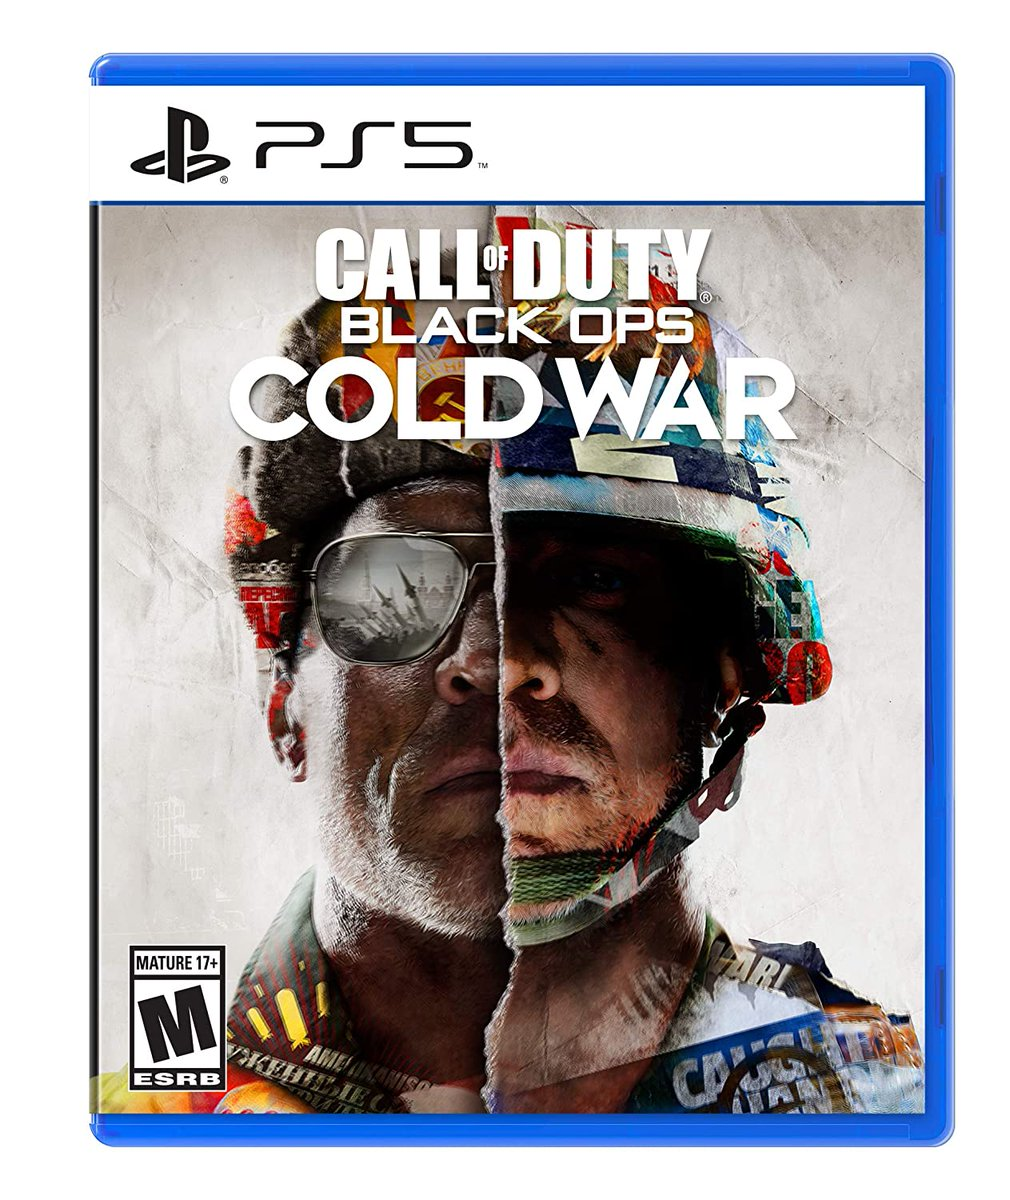 Call of Duty: Black Ops Cold War (PS4/XBO) is $49.94 at Walmart, PS5/XSX $59.94  2